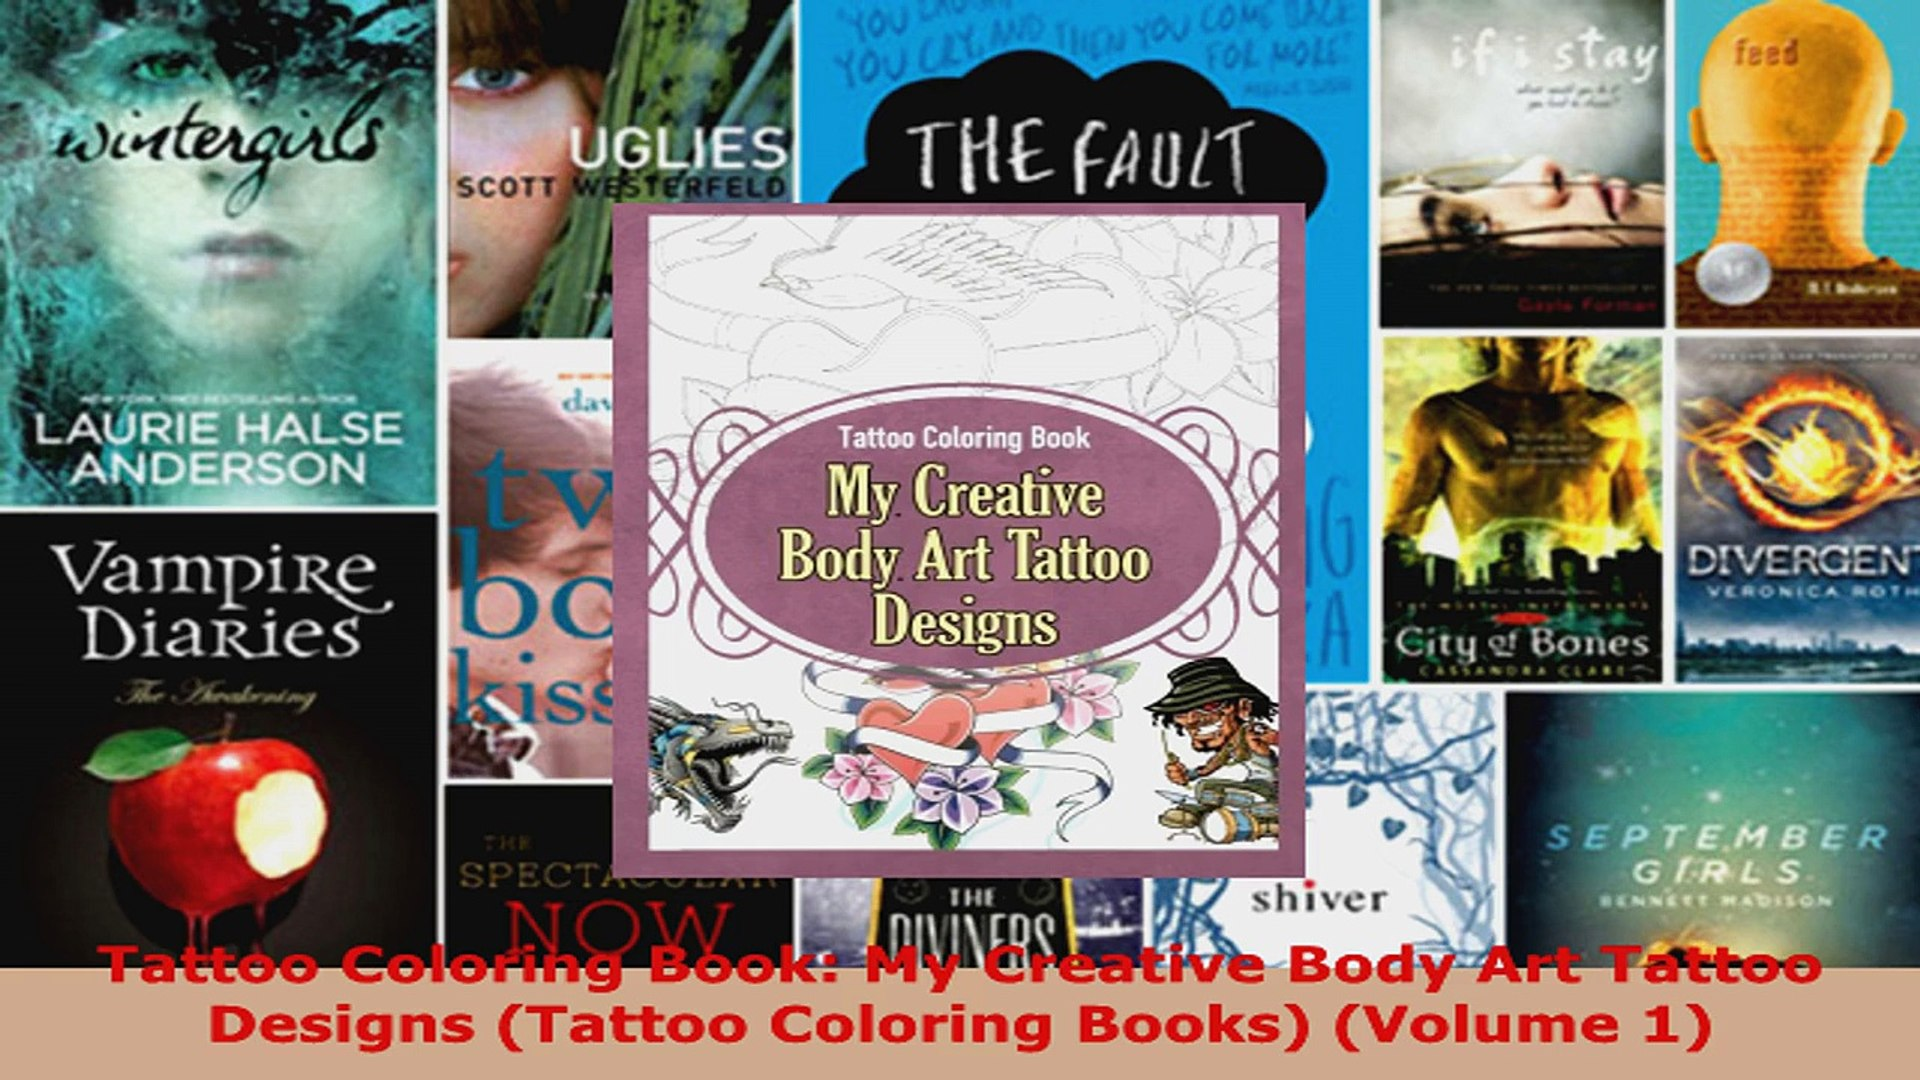 - Read Tattoo Coloring Book My Creative Body Art Tattoo Designs